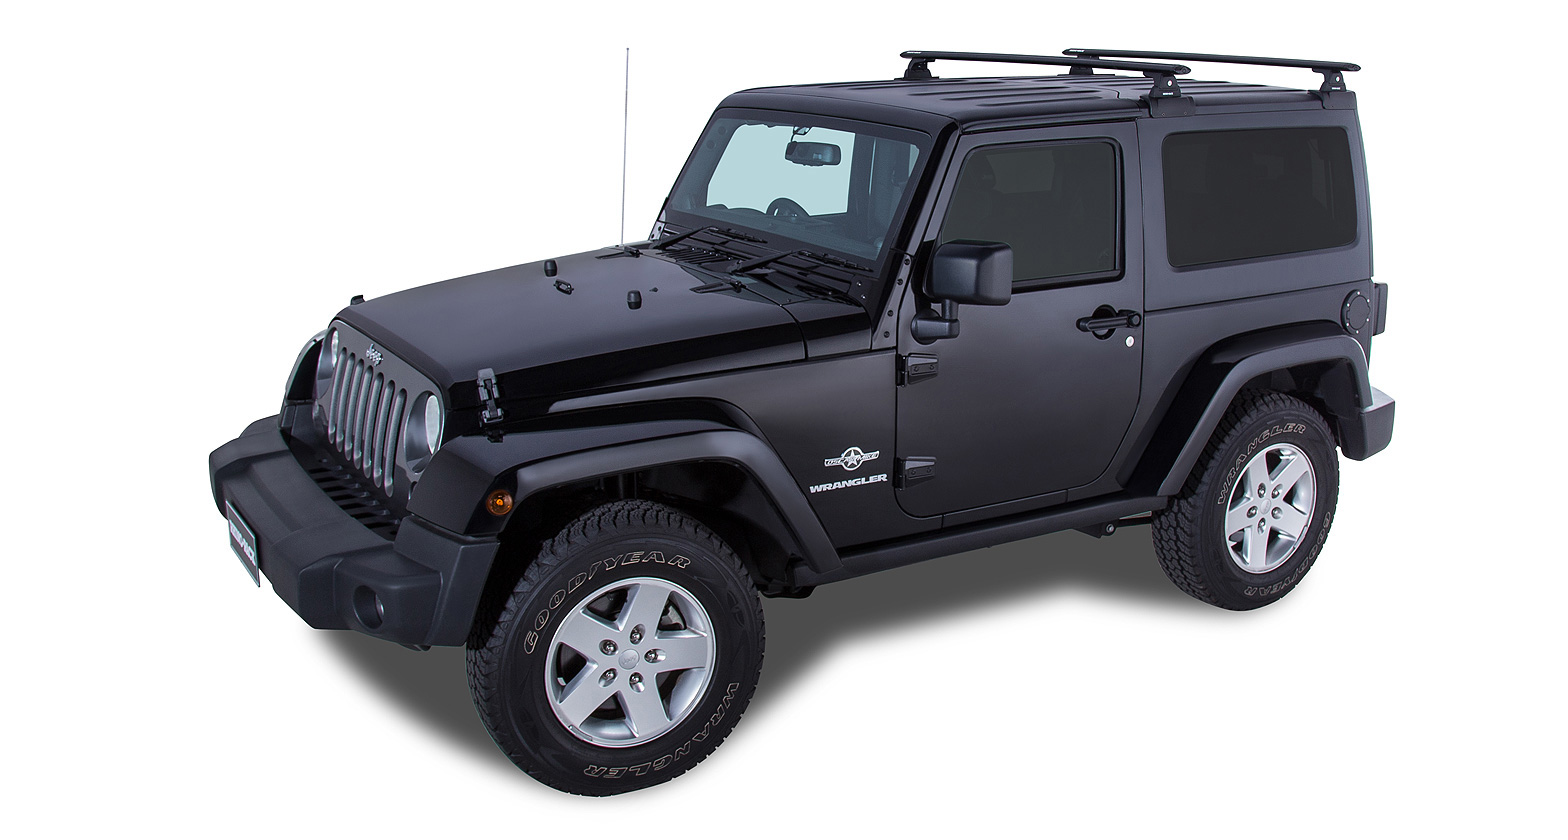 Wrangler Jeep Seat Covers >> Rhino Rack Vortex RLT600 Black 2 Bar Backbone Roof Rack (2 Door) #JA6382